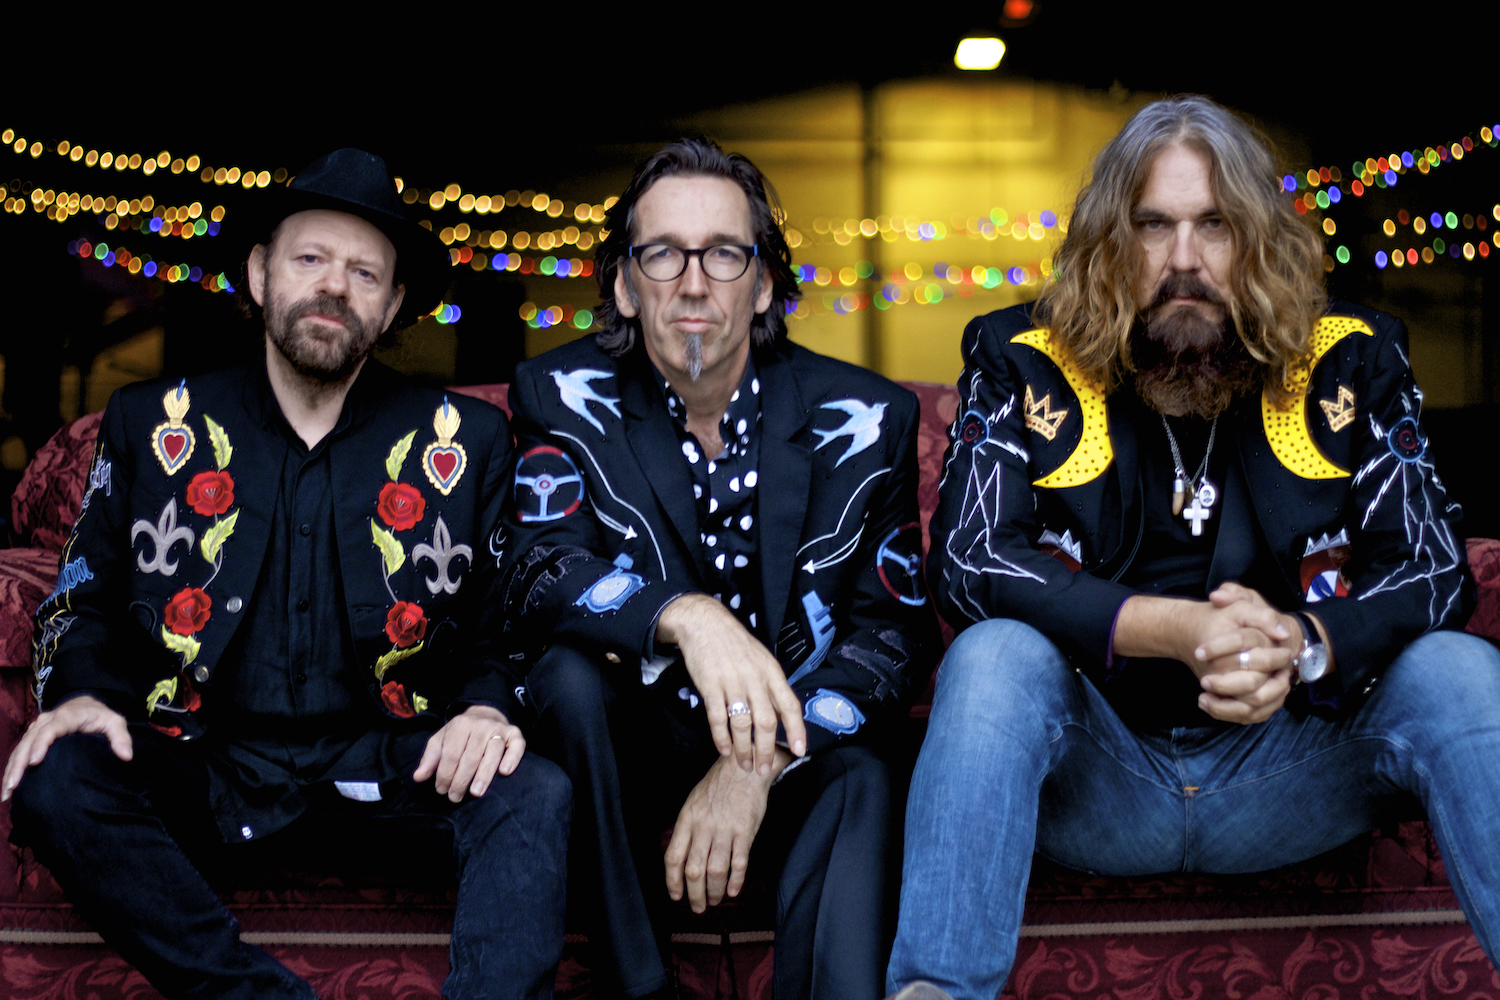 LISTEN: Blackie and the Rodeo Kings, 'Land of the Living'